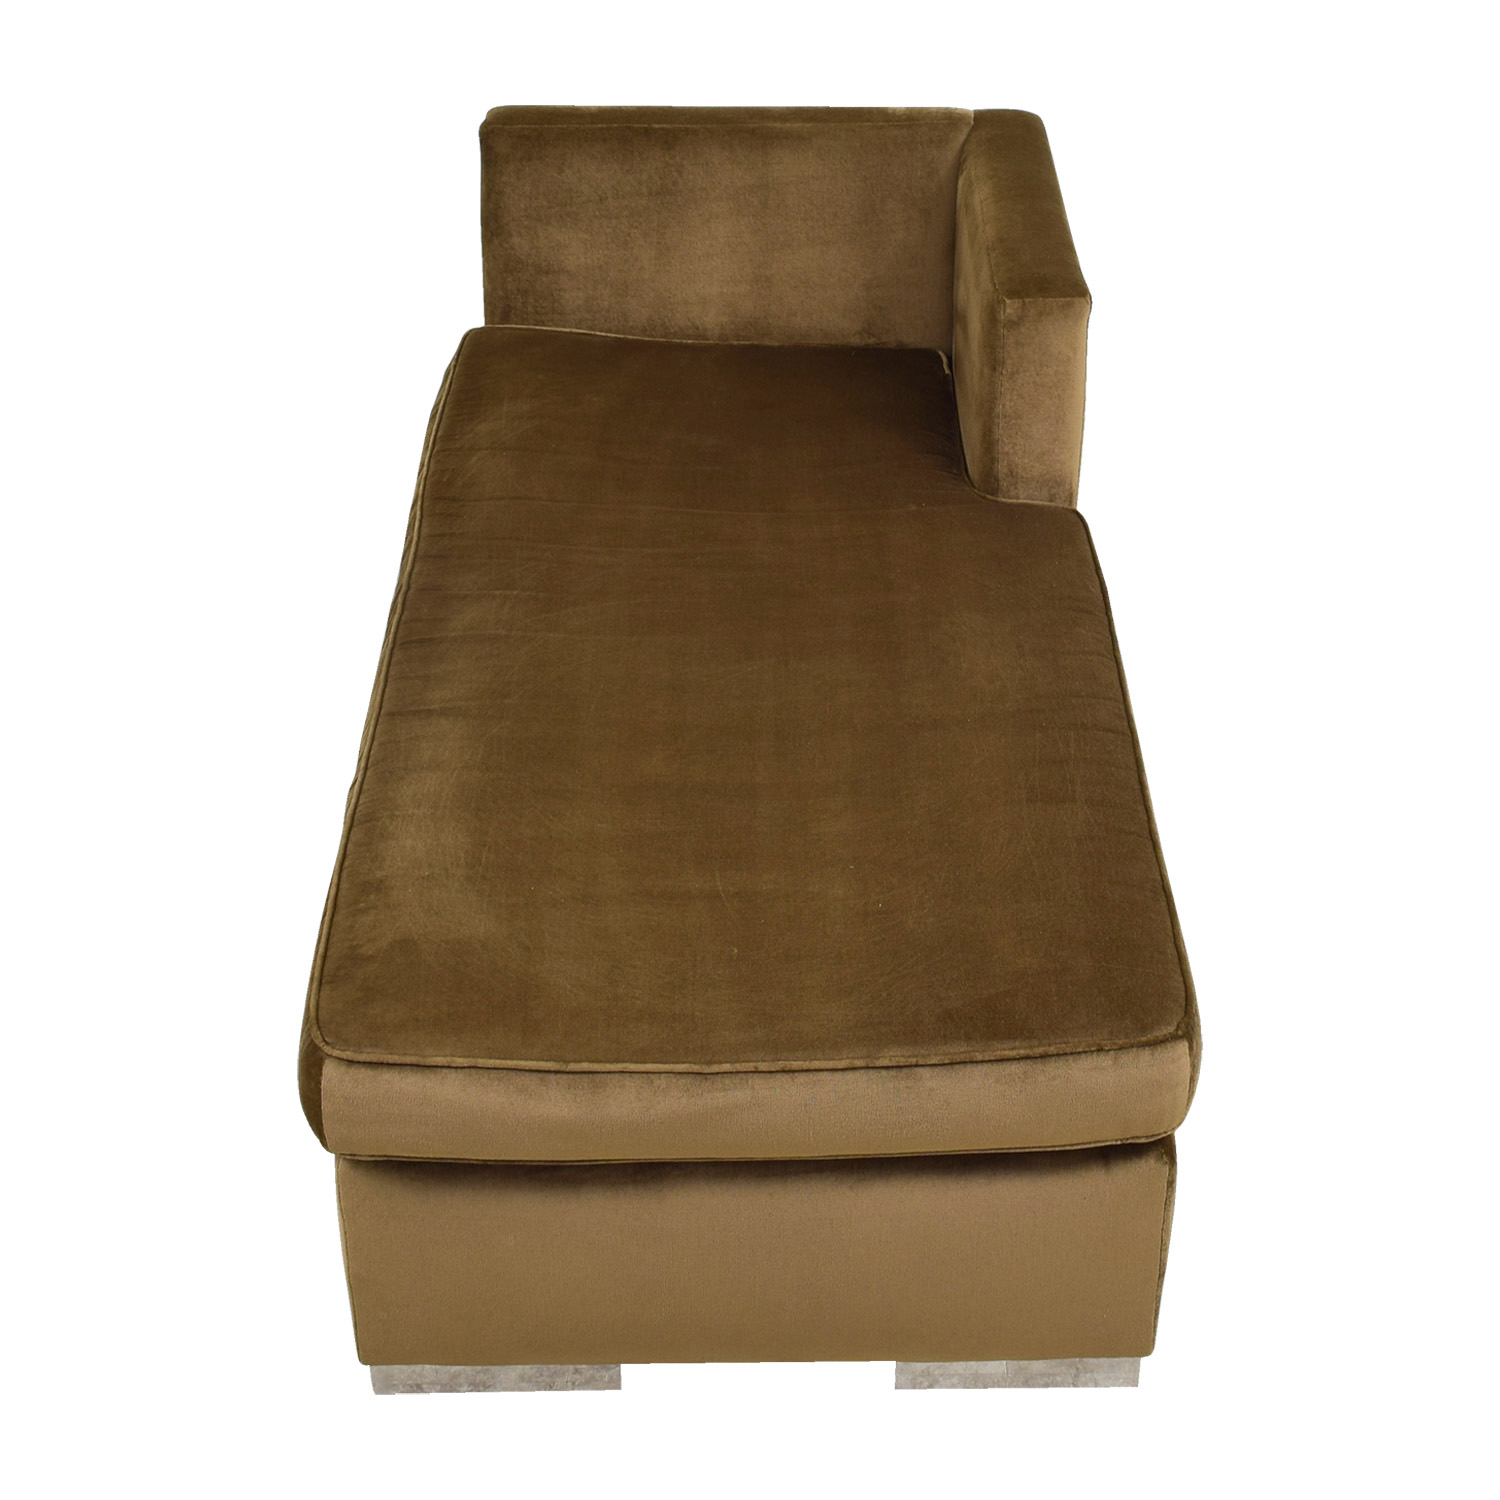 Leija Designs Leija Designs Brown Mohair Chaise Lounger for sale